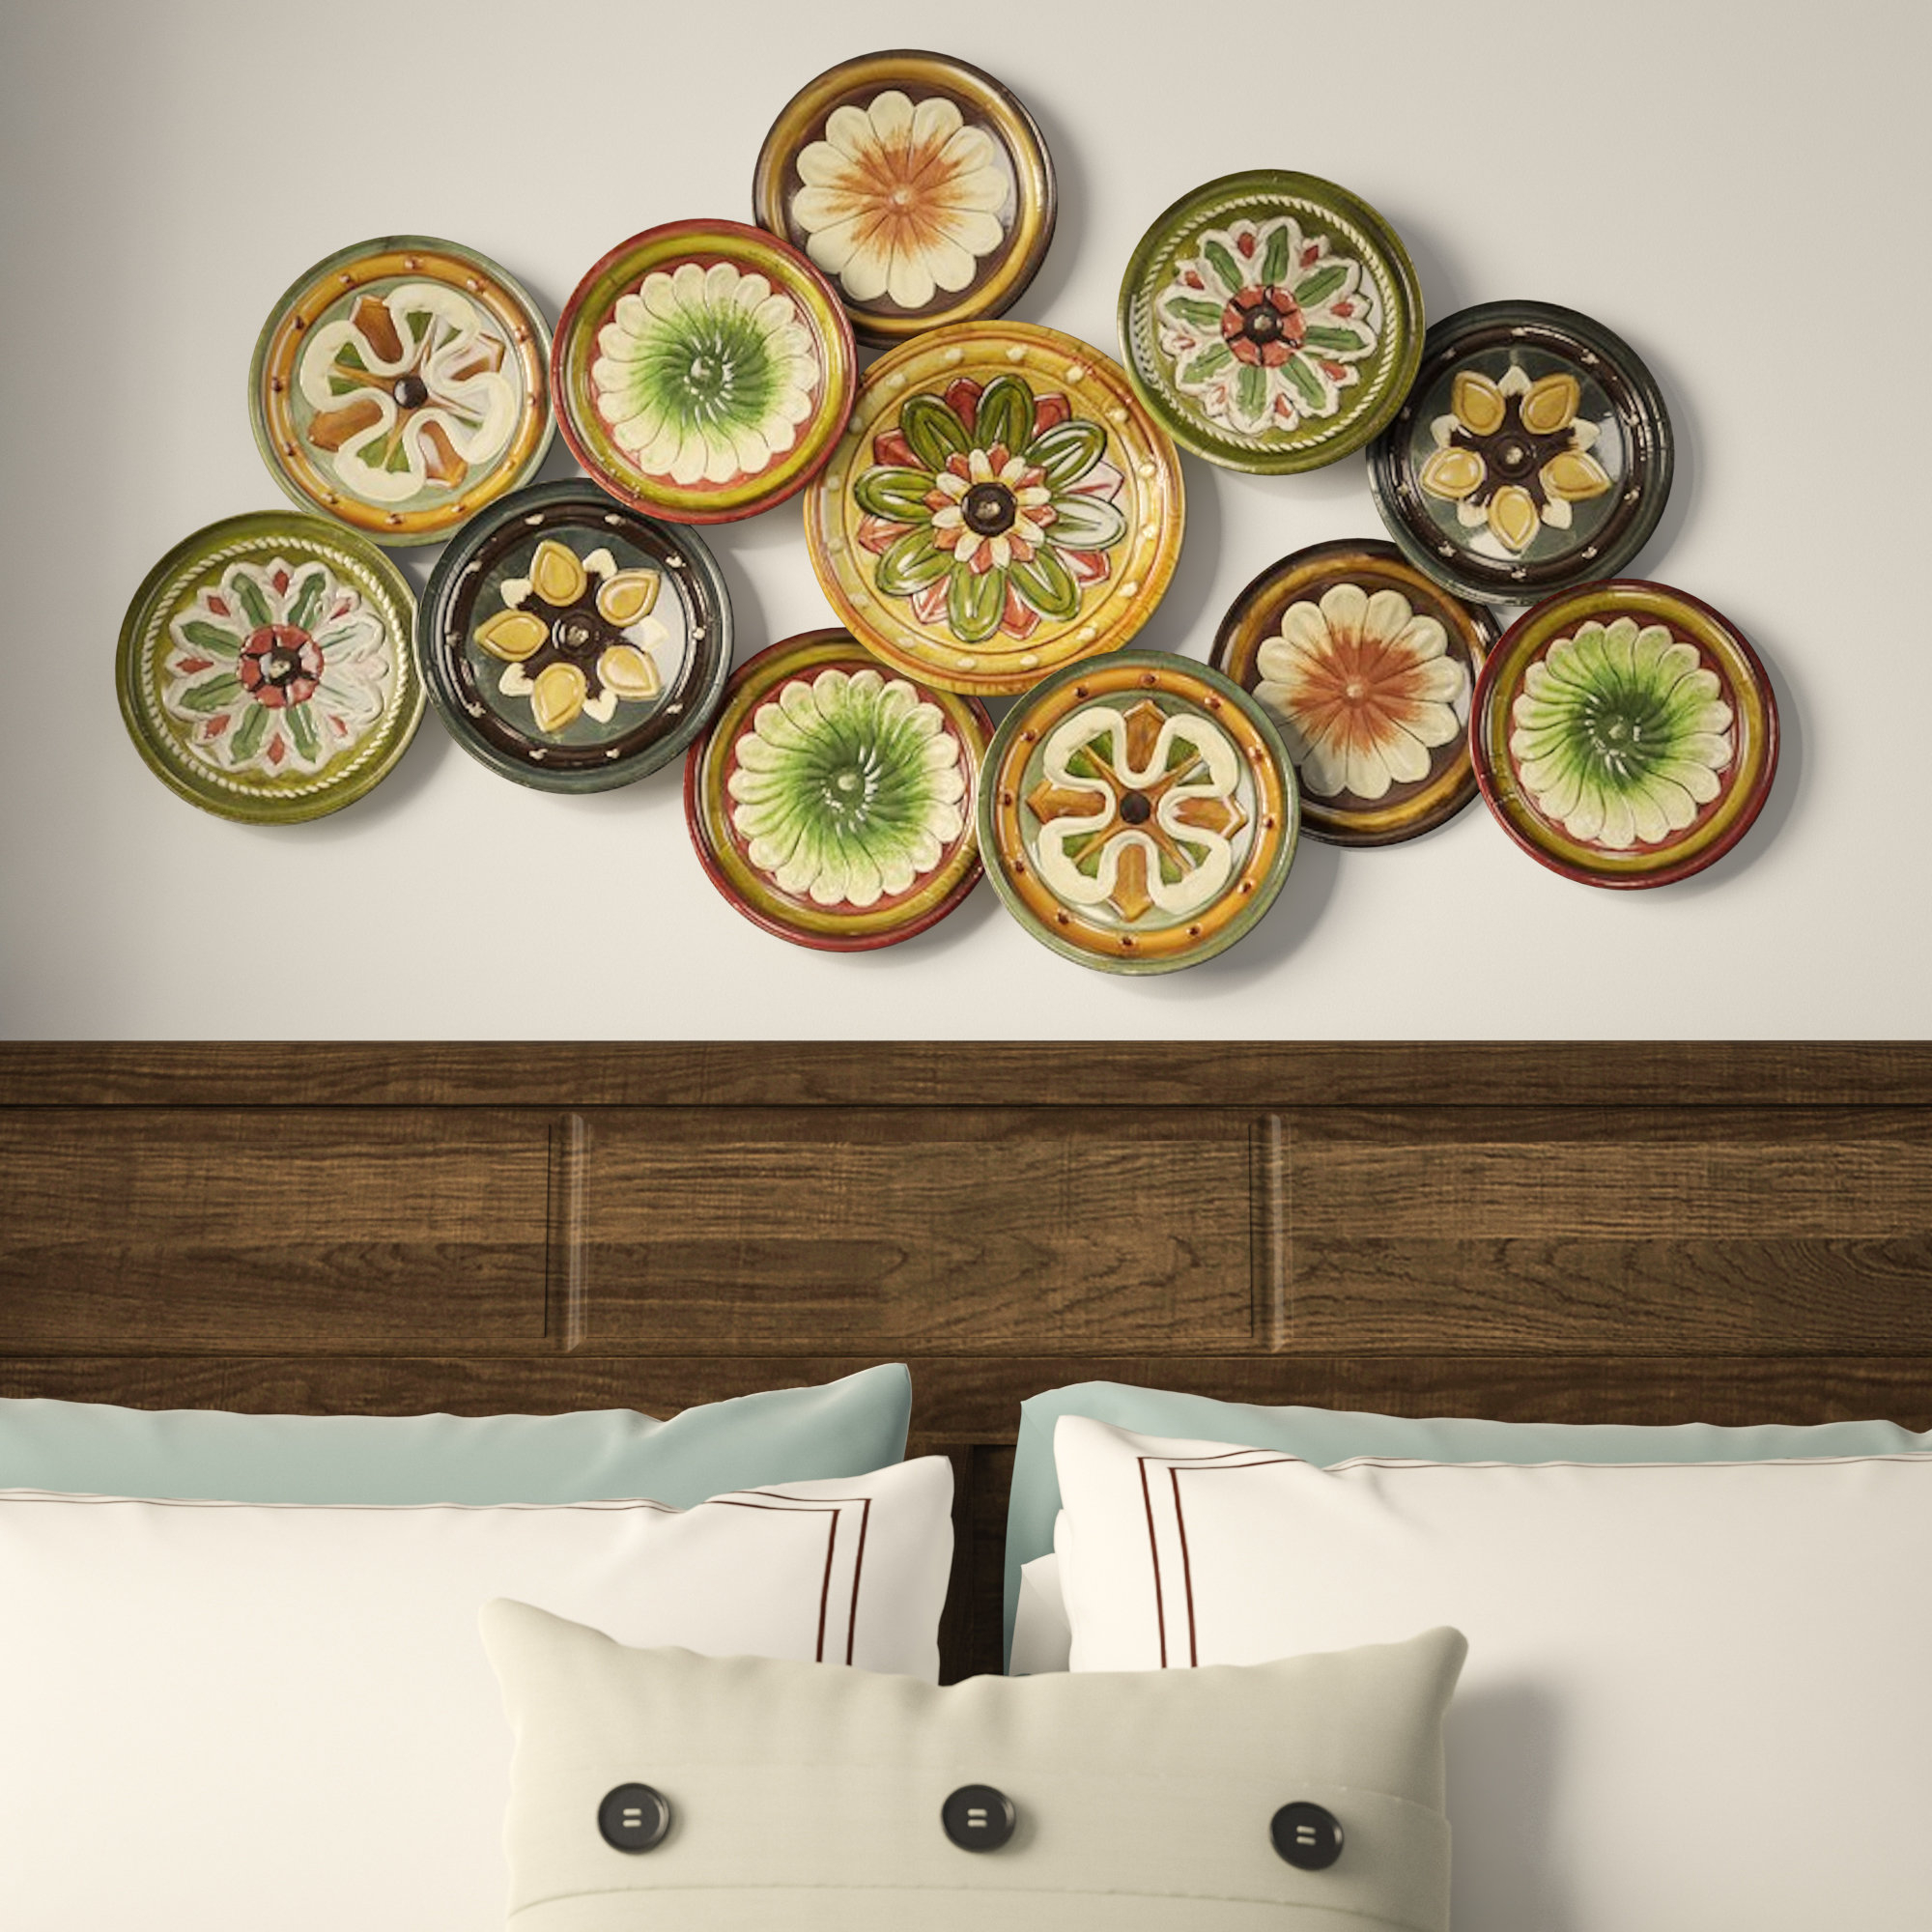 Charlton Home Metal Wall Décor Regarding Scattered Metal Italian Plates Wall Decor (View 5 of 30)